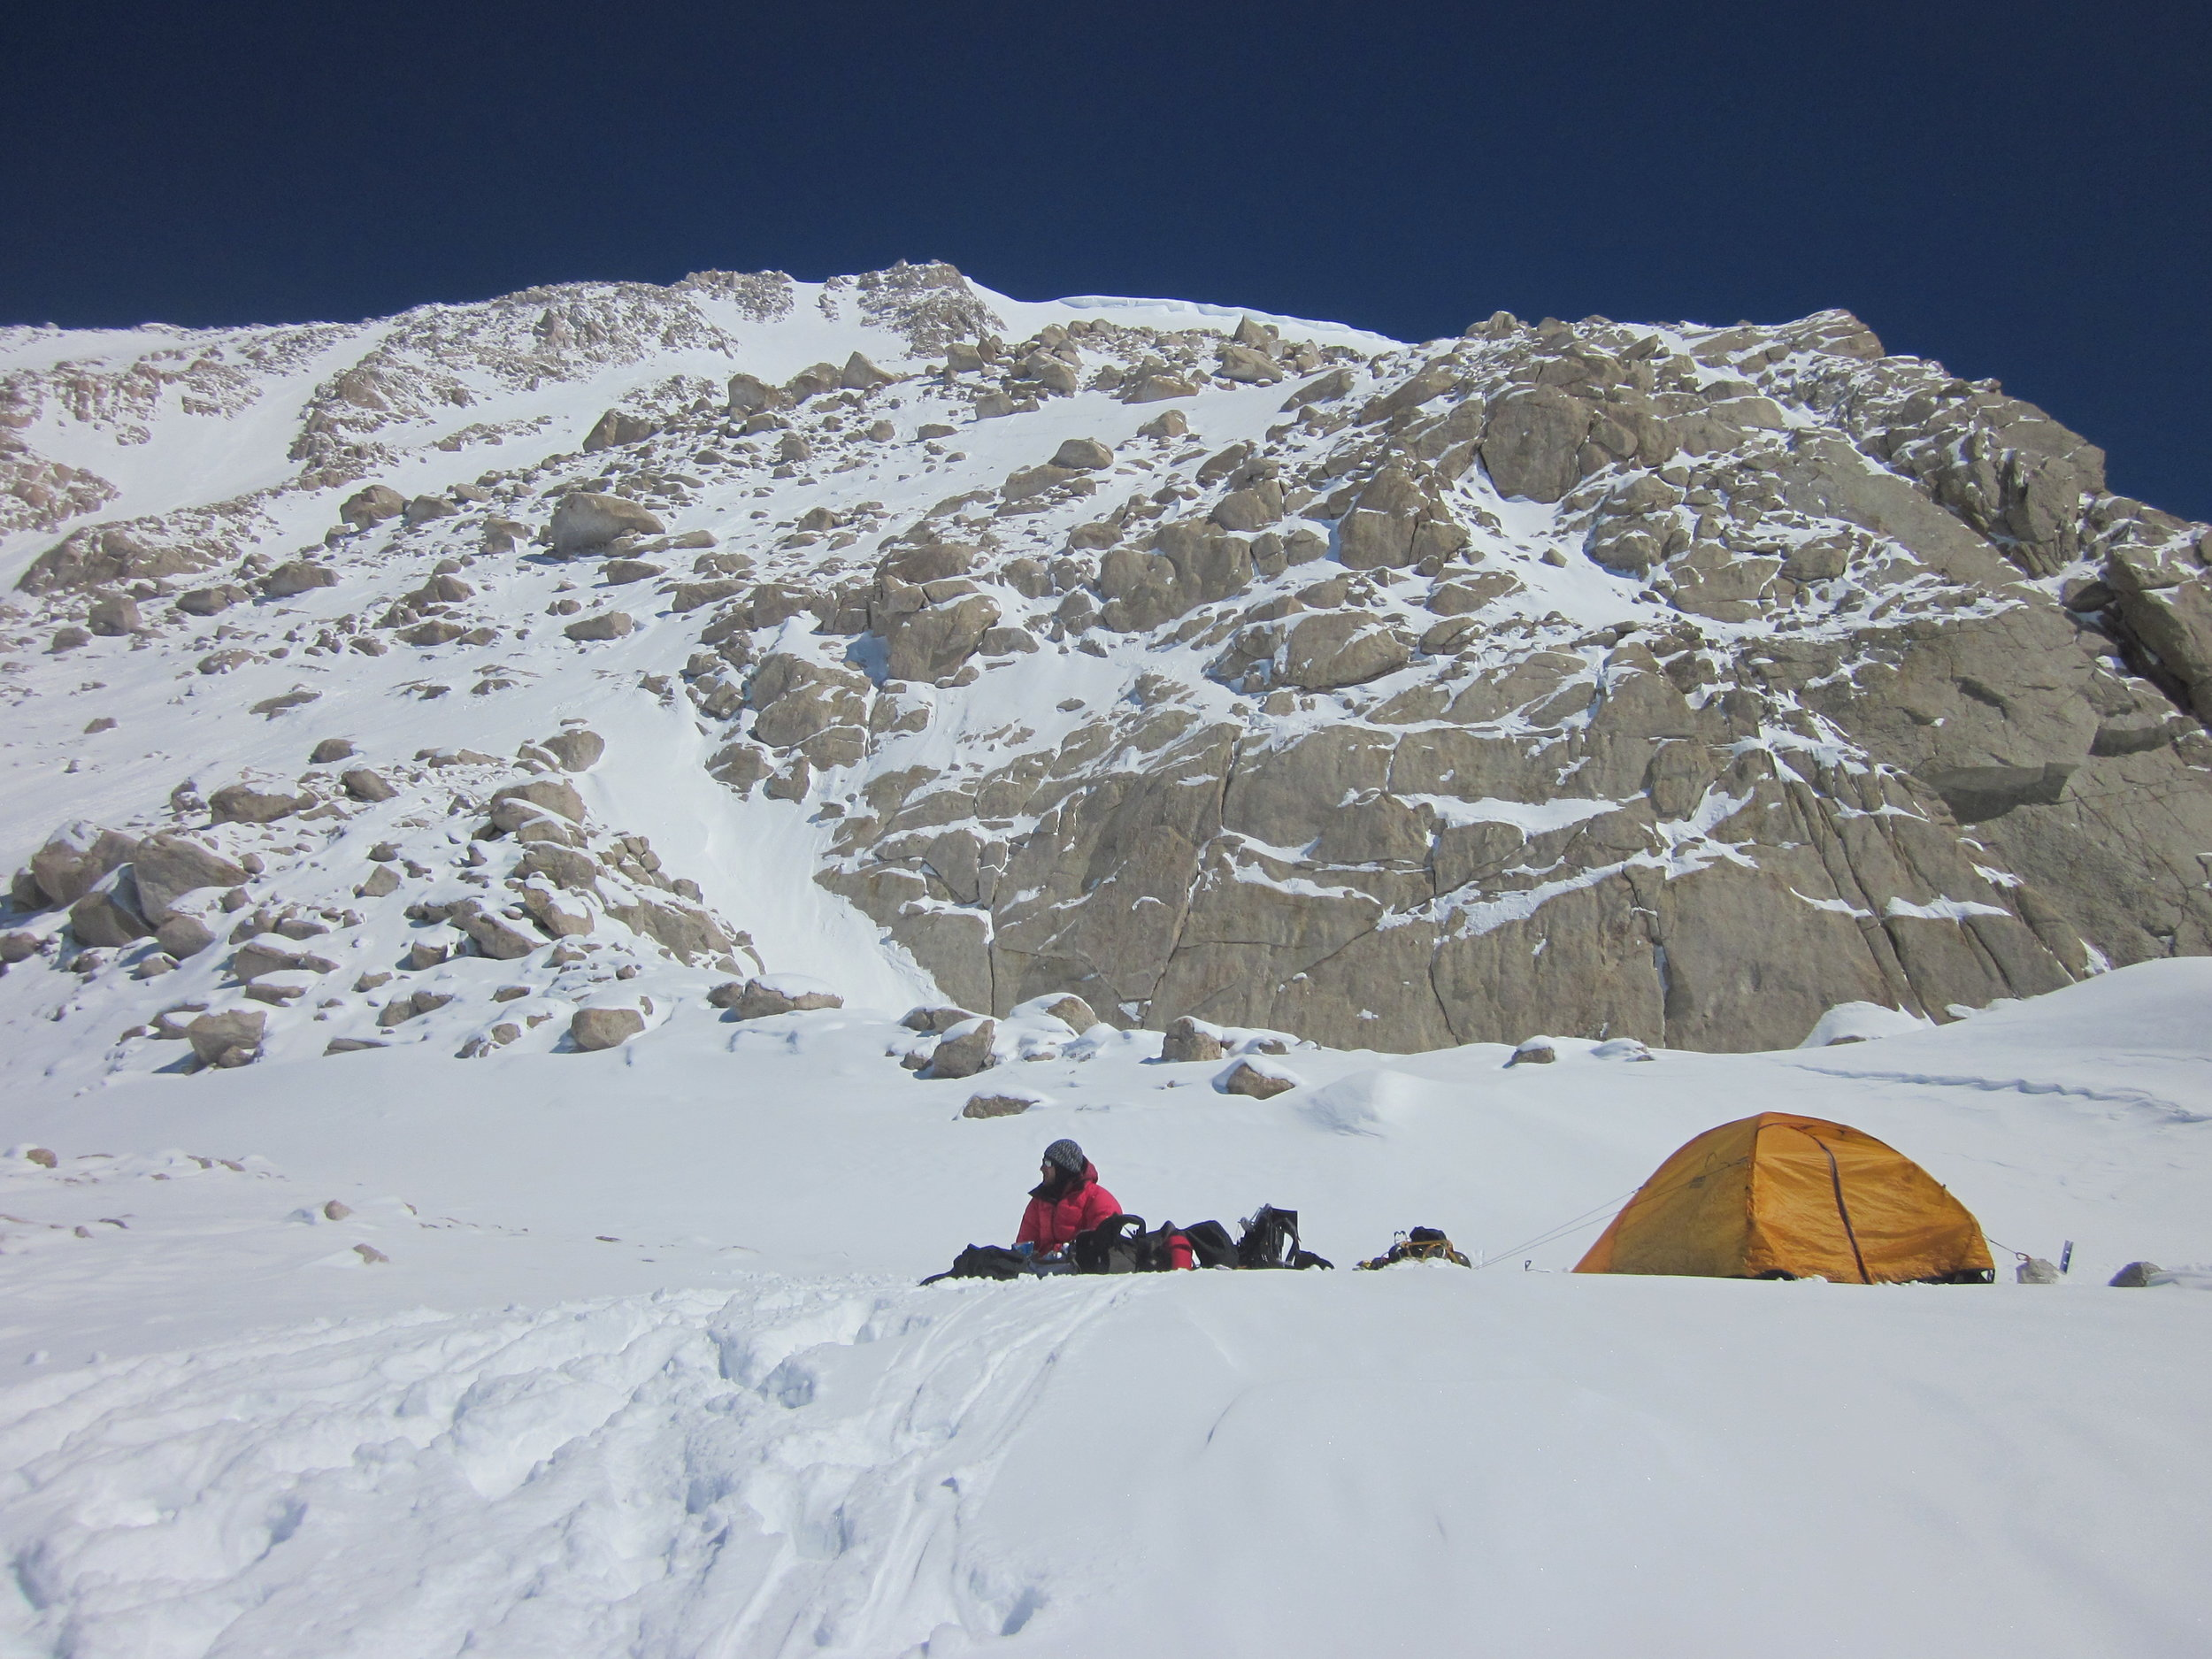 Balcony Camp and the summit